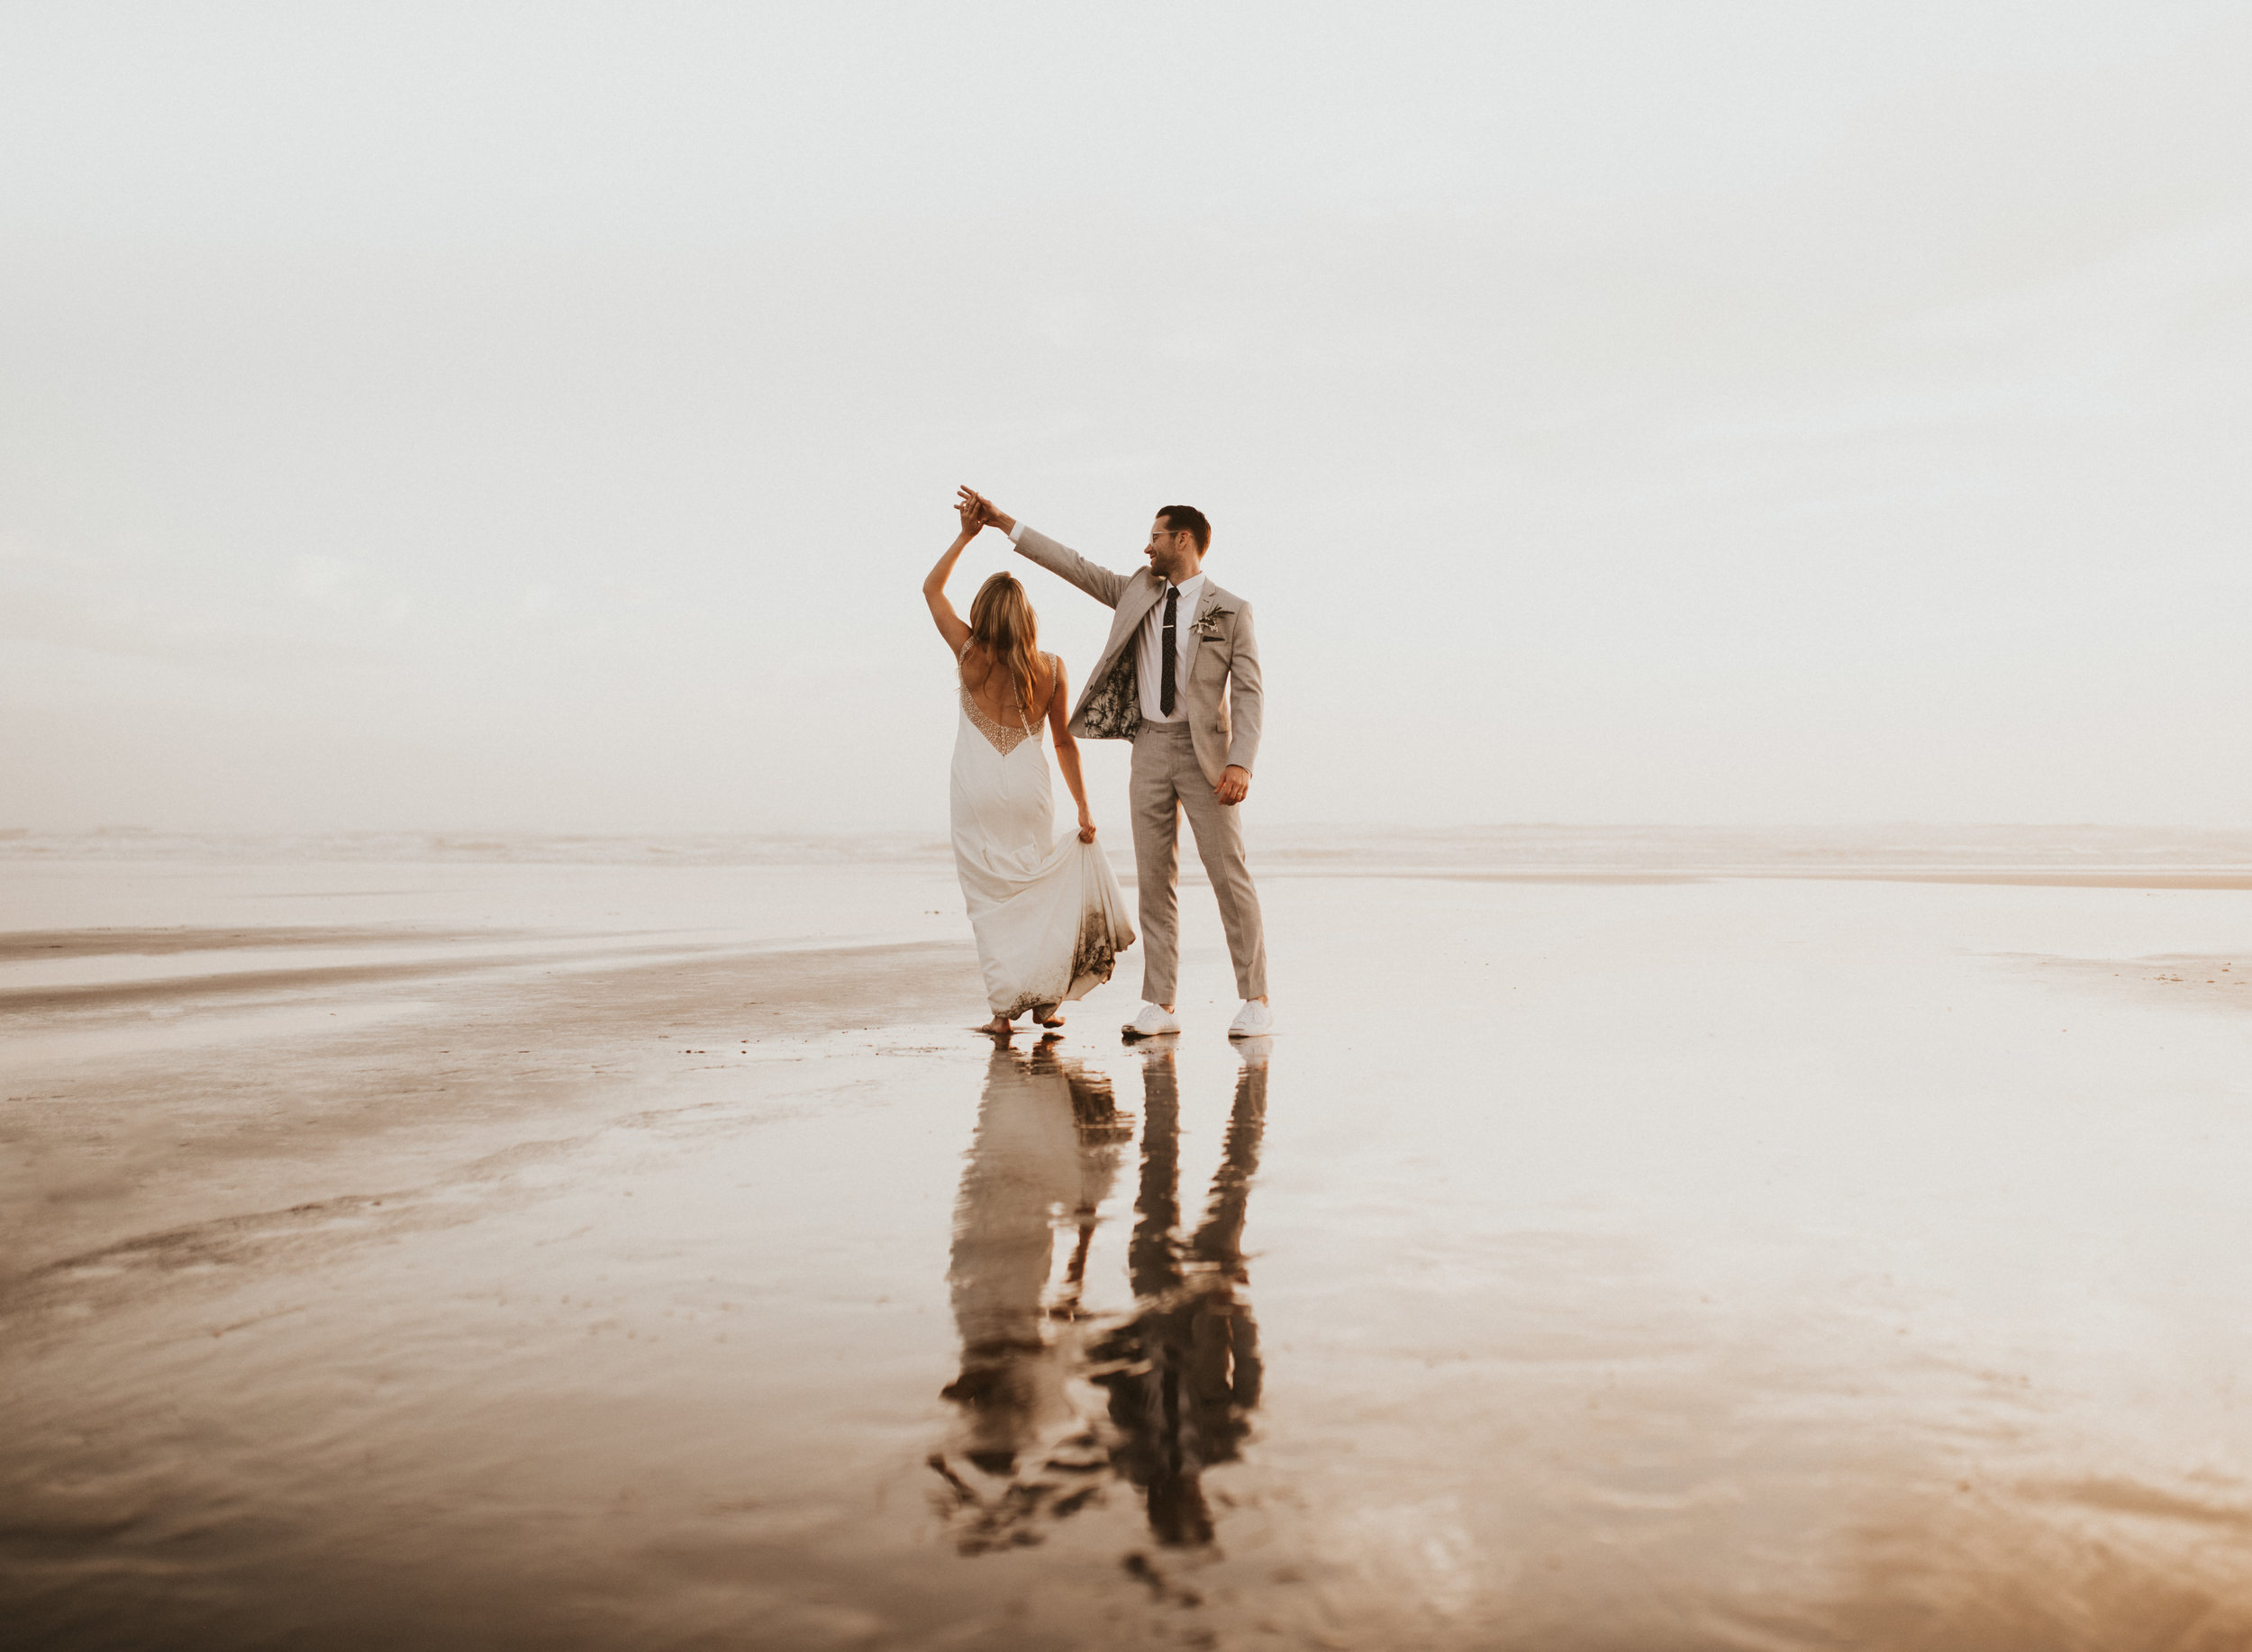 Please contact for a custom quote!    Wedding packages start at  $1800 for 6 hours worth of coverage  Are you eloping? Having a 'micro' / intimate wedding? Or need more coverage? For all of these options and more,  please inquire  and I'll send you my detailed investment guide + all the extra goodies that are included!